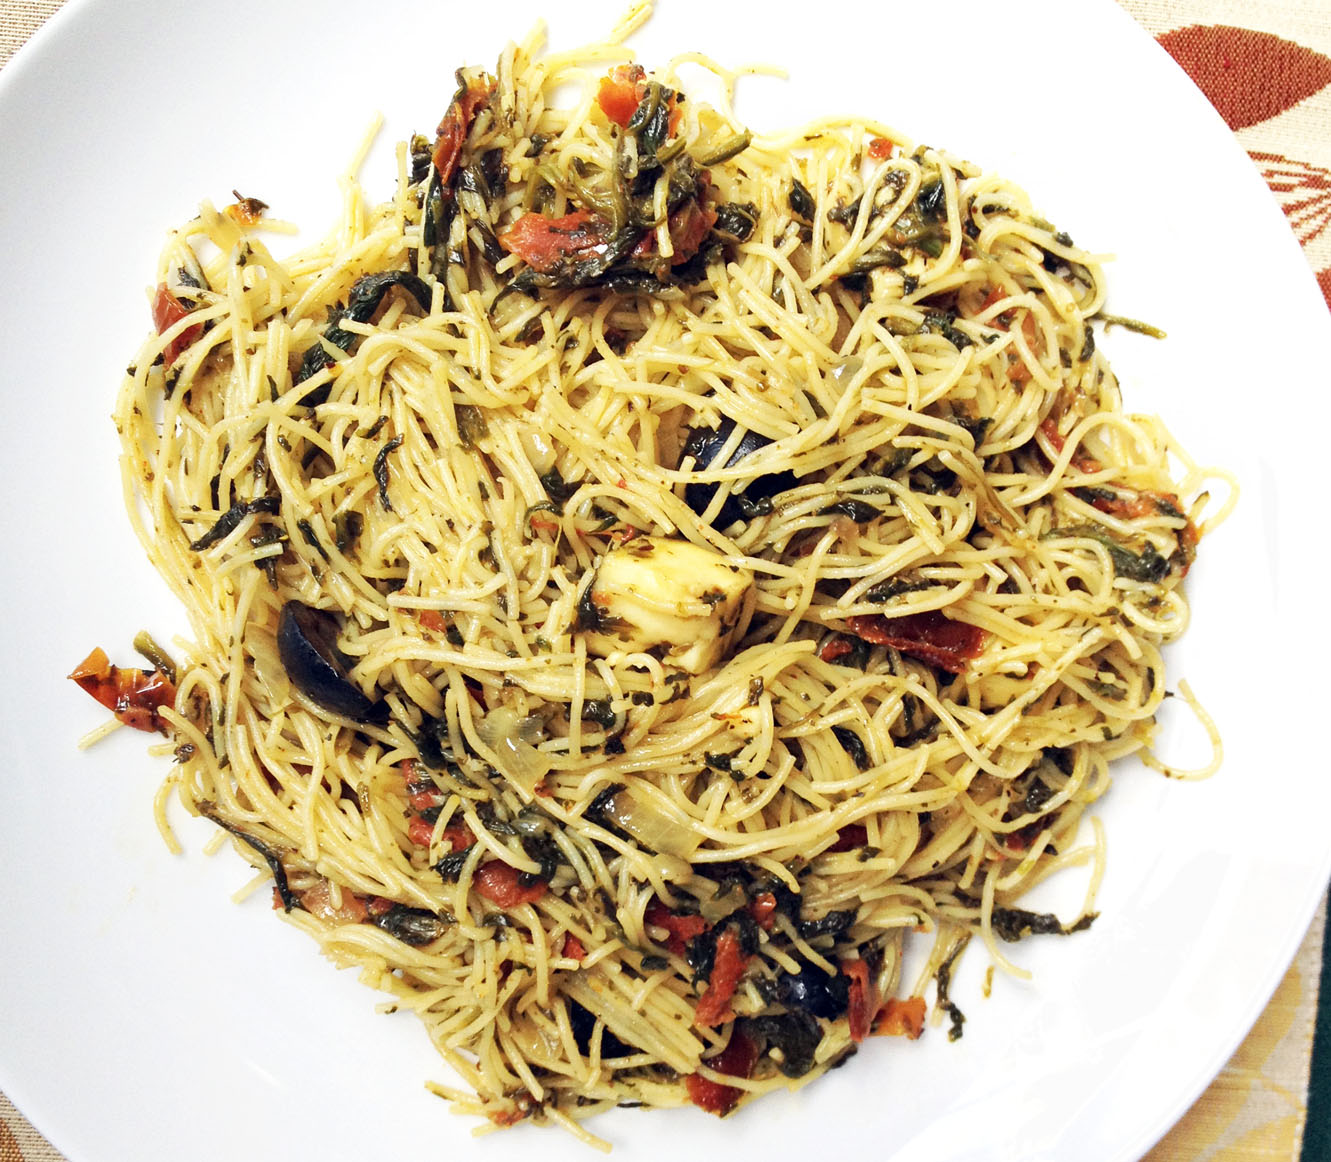 Spinach, Sun-dried Tomatoes, Pasta, Healthy